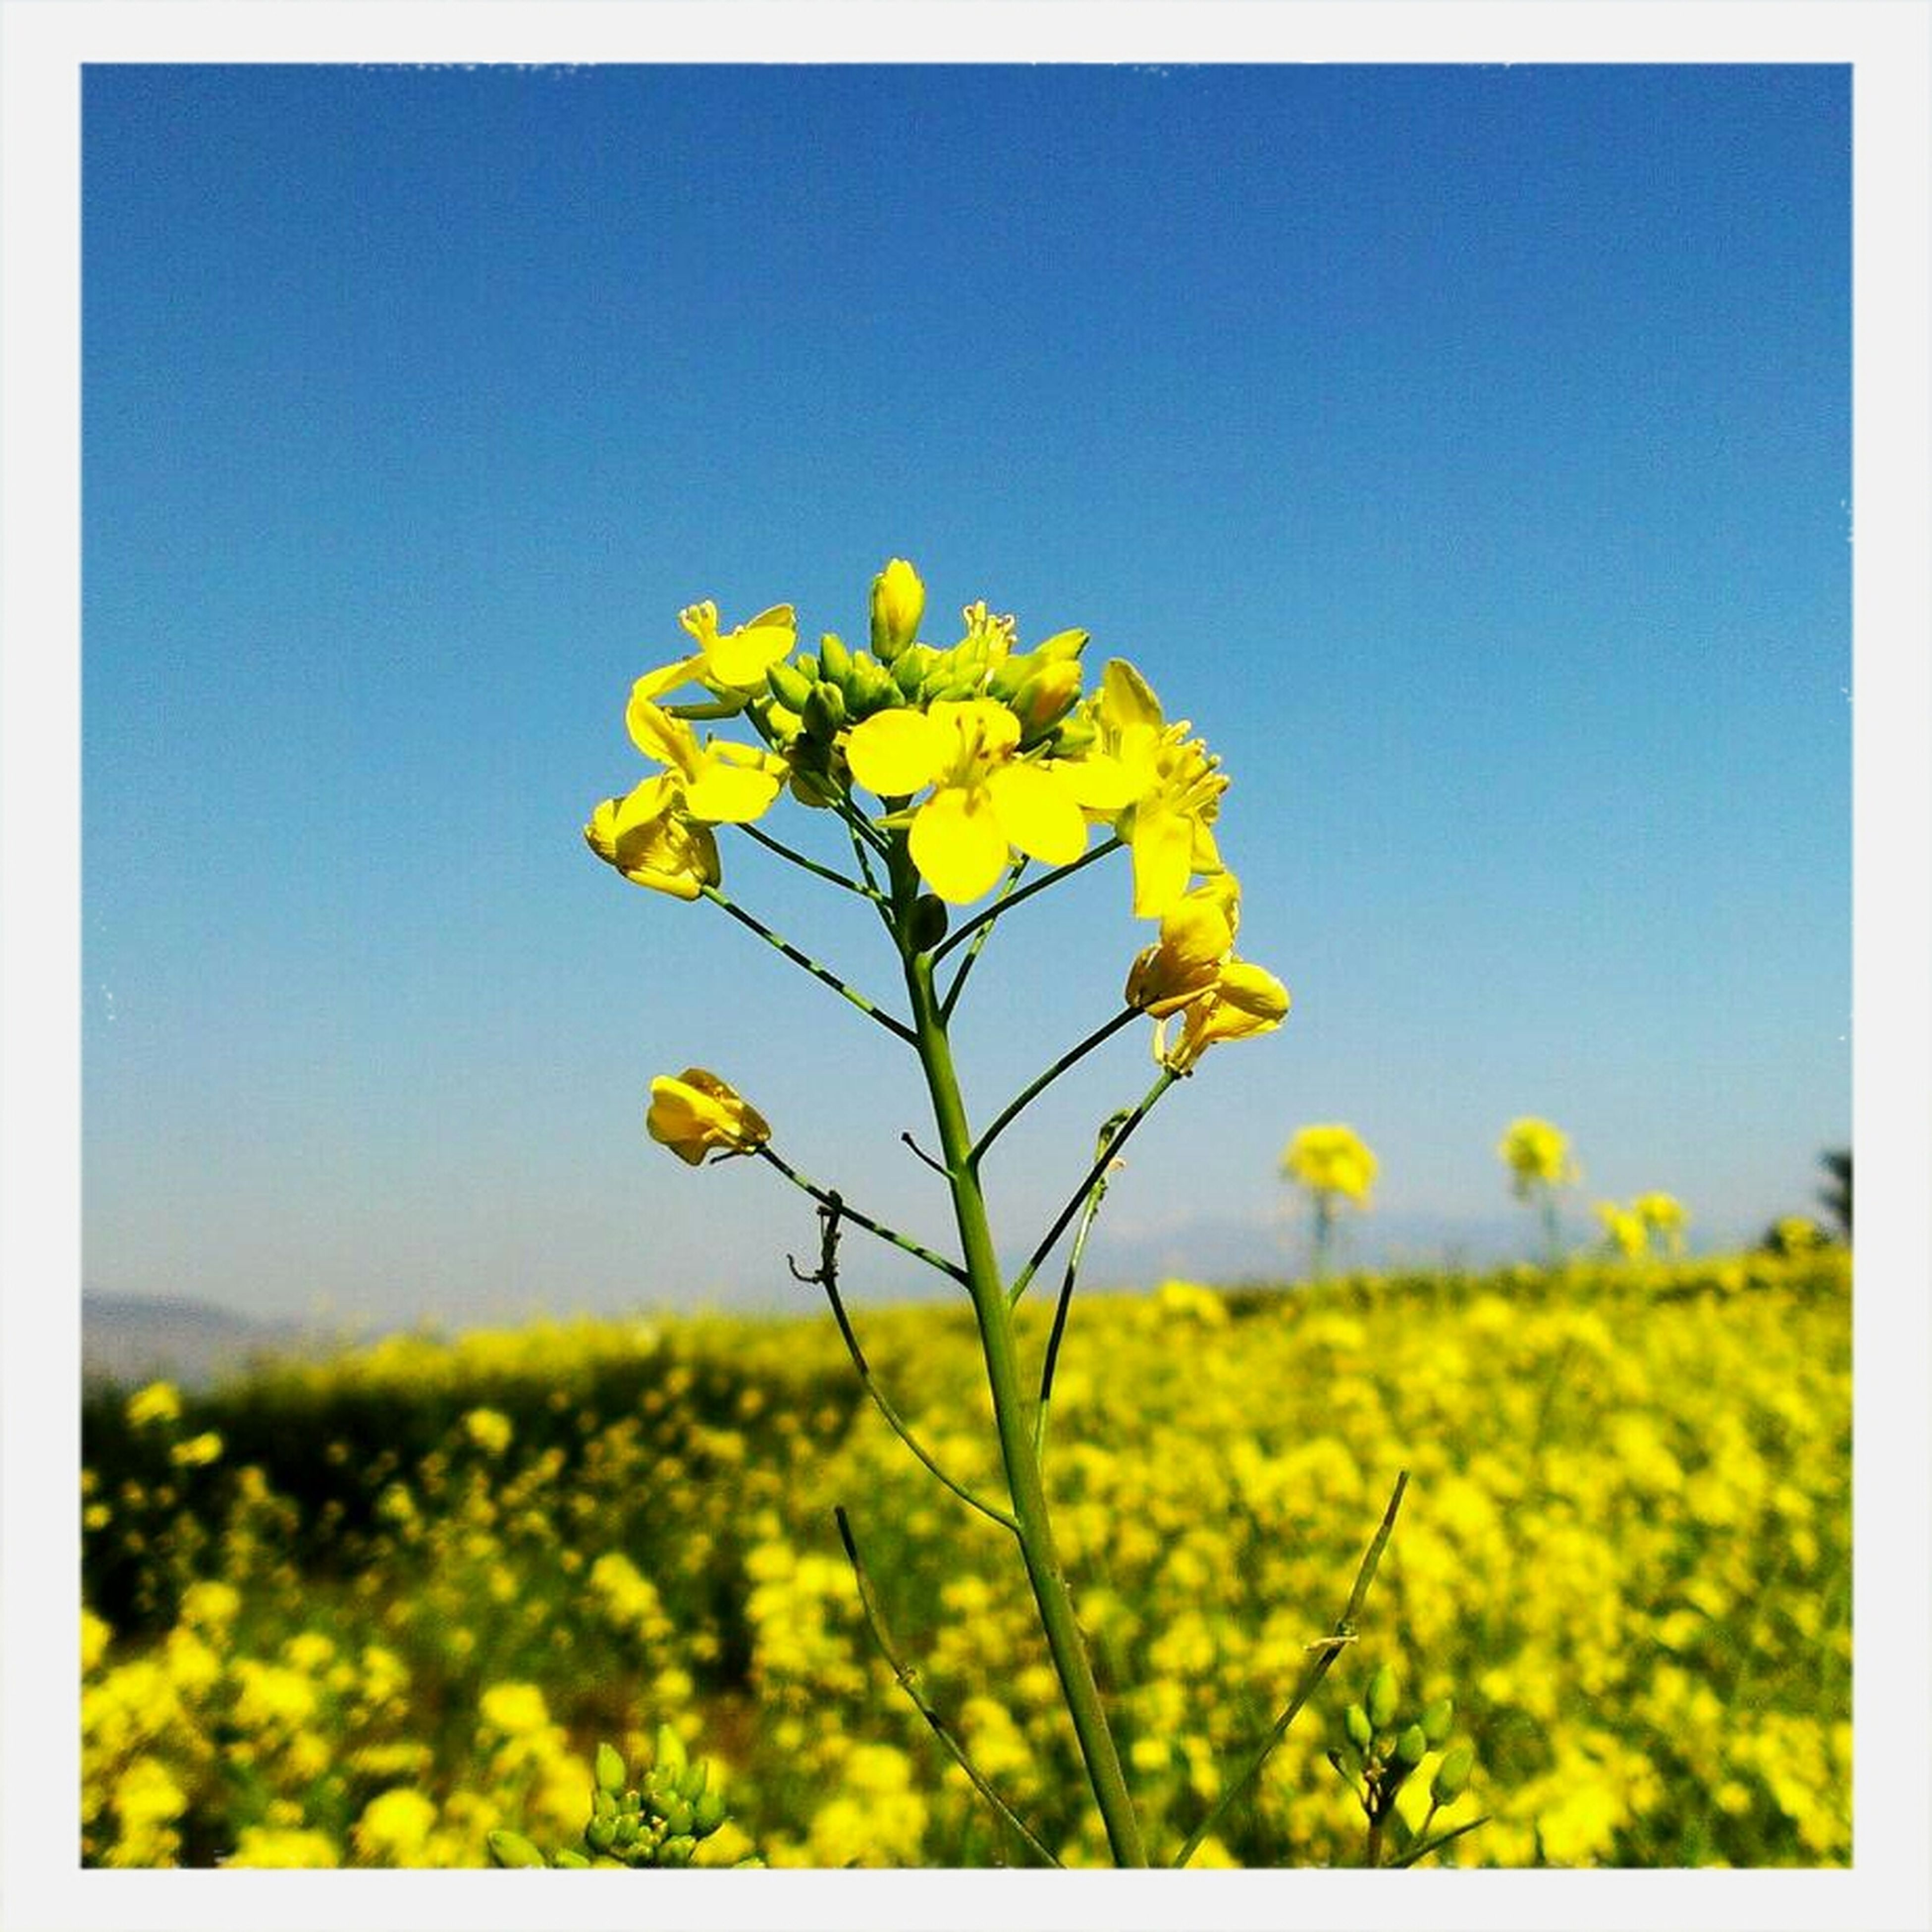 flower, yellow, growth, field, freshness, beauty in nature, clear sky, fragility, transfer print, nature, blue, plant, blooming, stem, sky, wildflower, auto post production filter, rural scene, copy space, tranquility